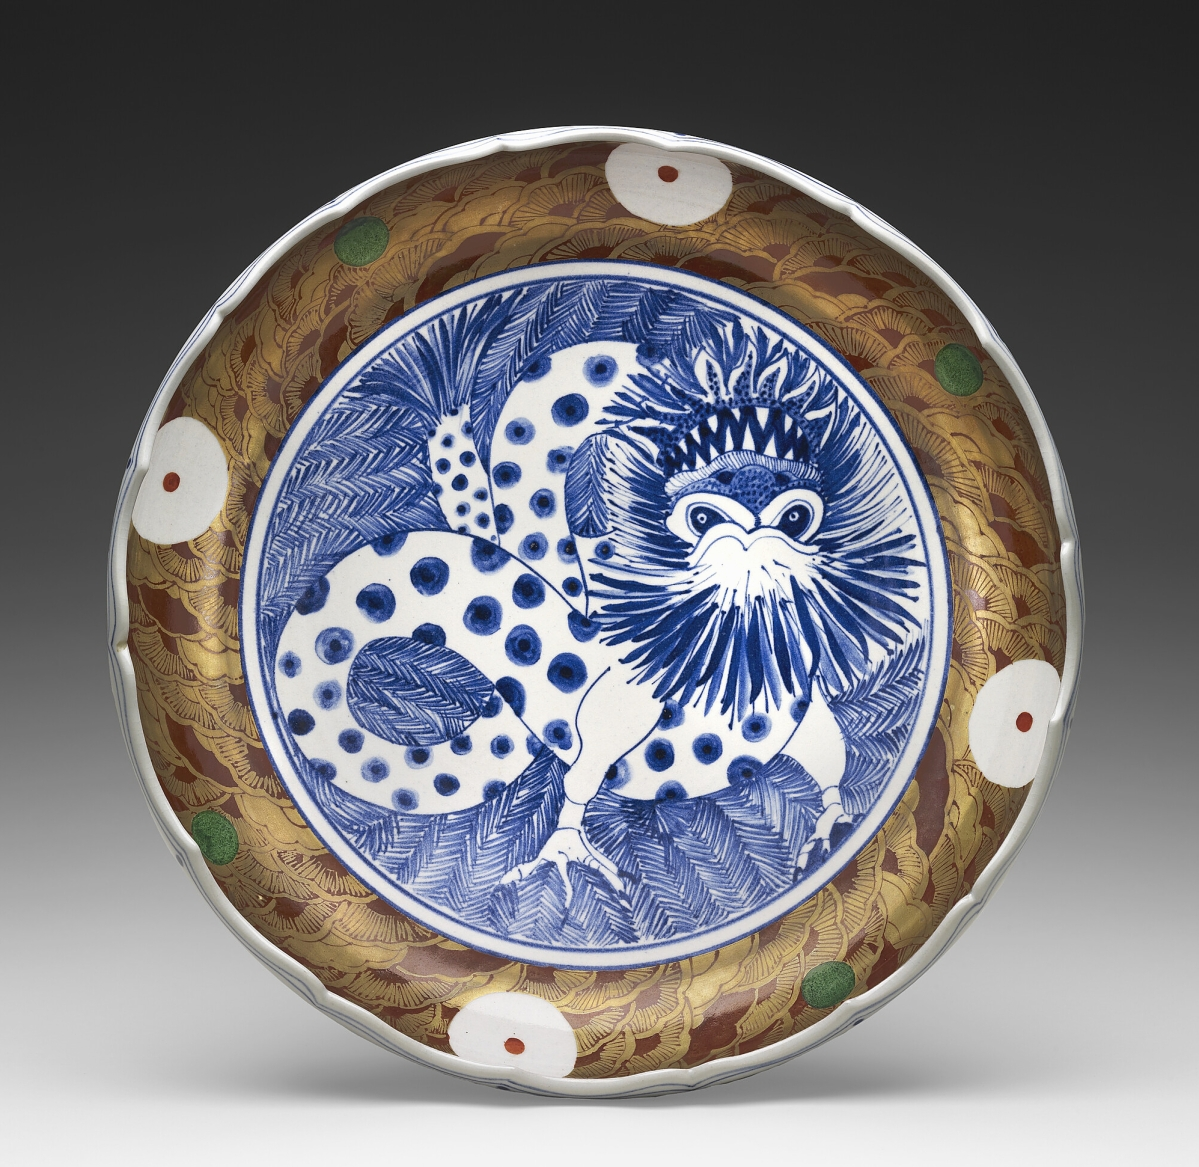 """""""Dragon Bowl"""" by Ralph Bacerra (American, 1938-2008), 1979. Porcelain. The Leatrice S. and Melvin B. Eagle Collection, museum purchase funded by the Caroline Wiess Law Accessions Endowment Fund."""